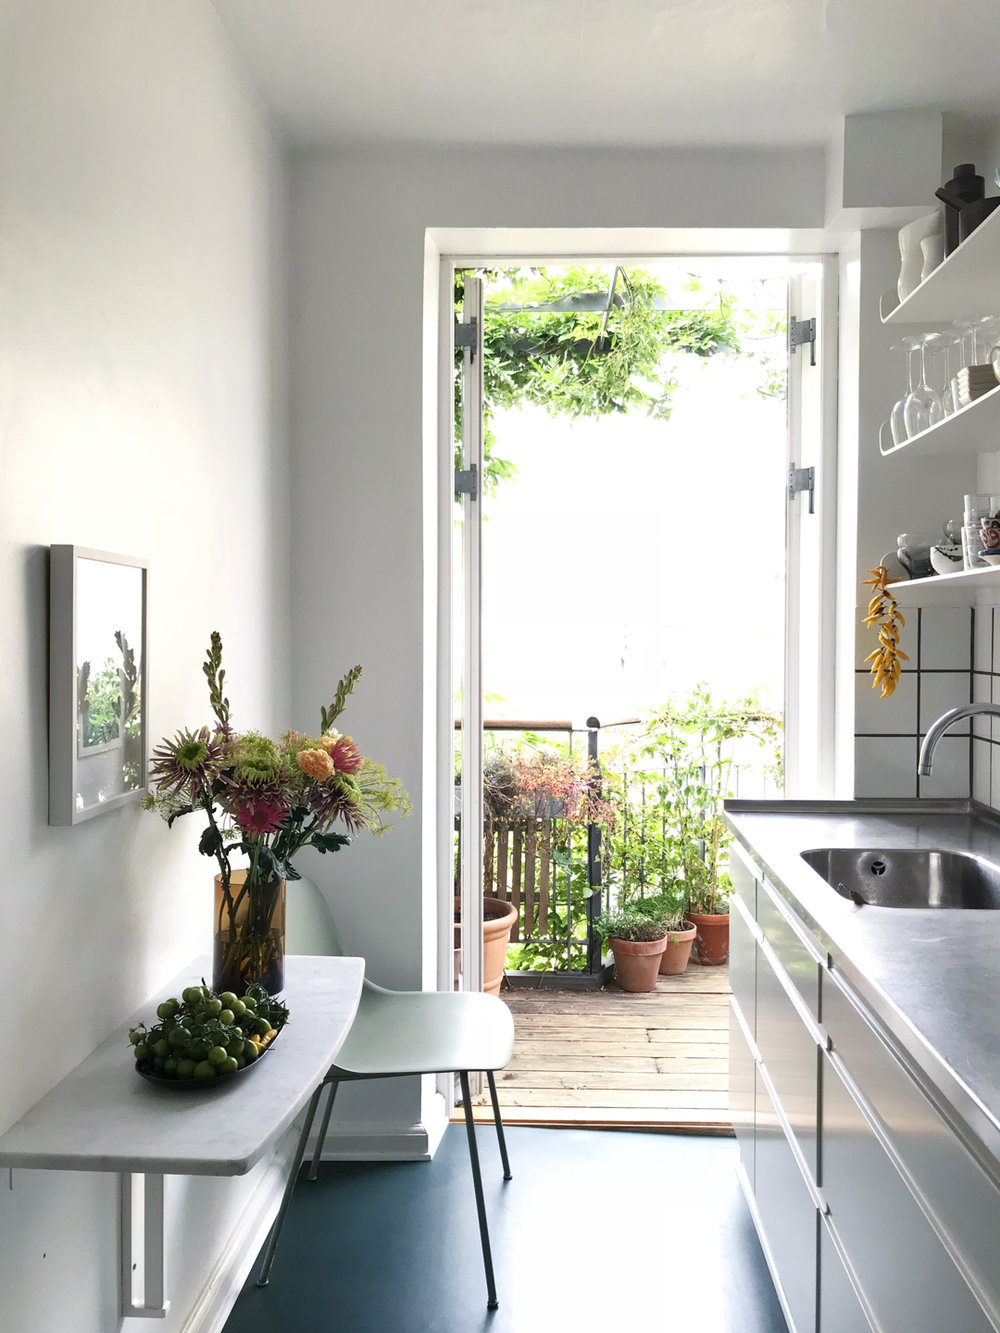 Kitchen and balcony view